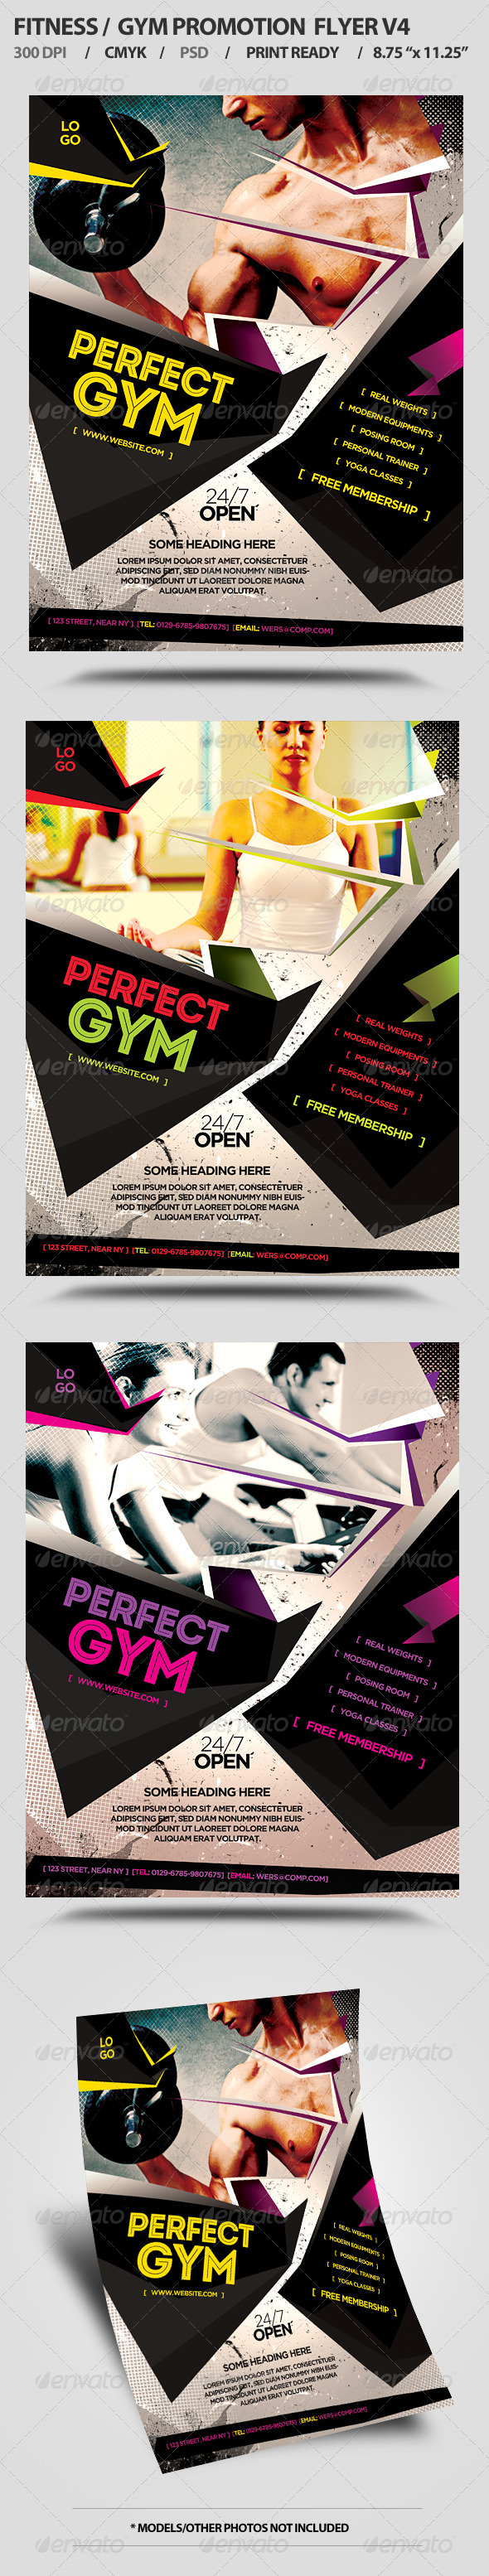 Fitness/Gym Business Promotion Flyer V4  - Flyers Print Templates